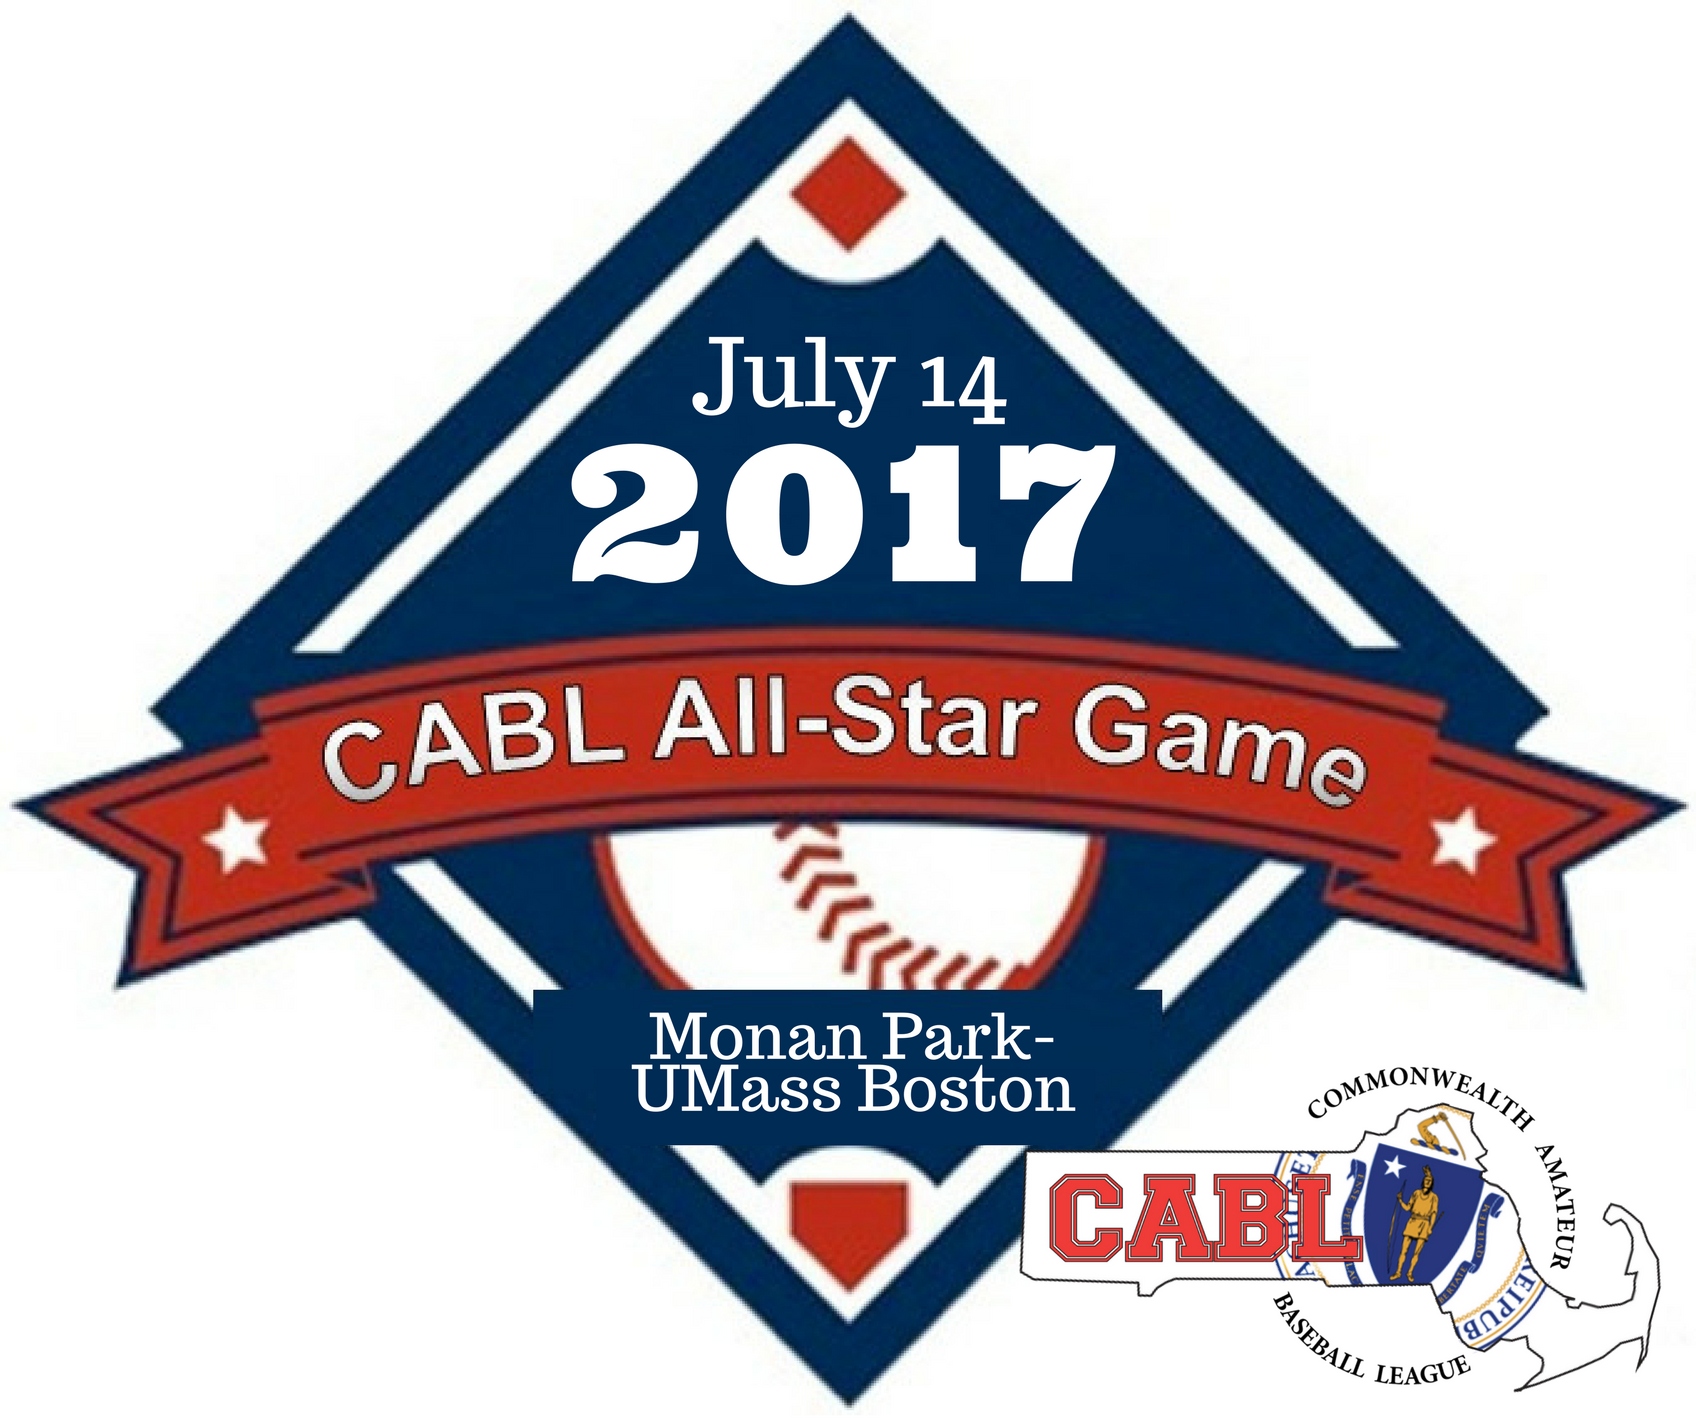 Congratulations to the 2017 CABL All-Star Teams